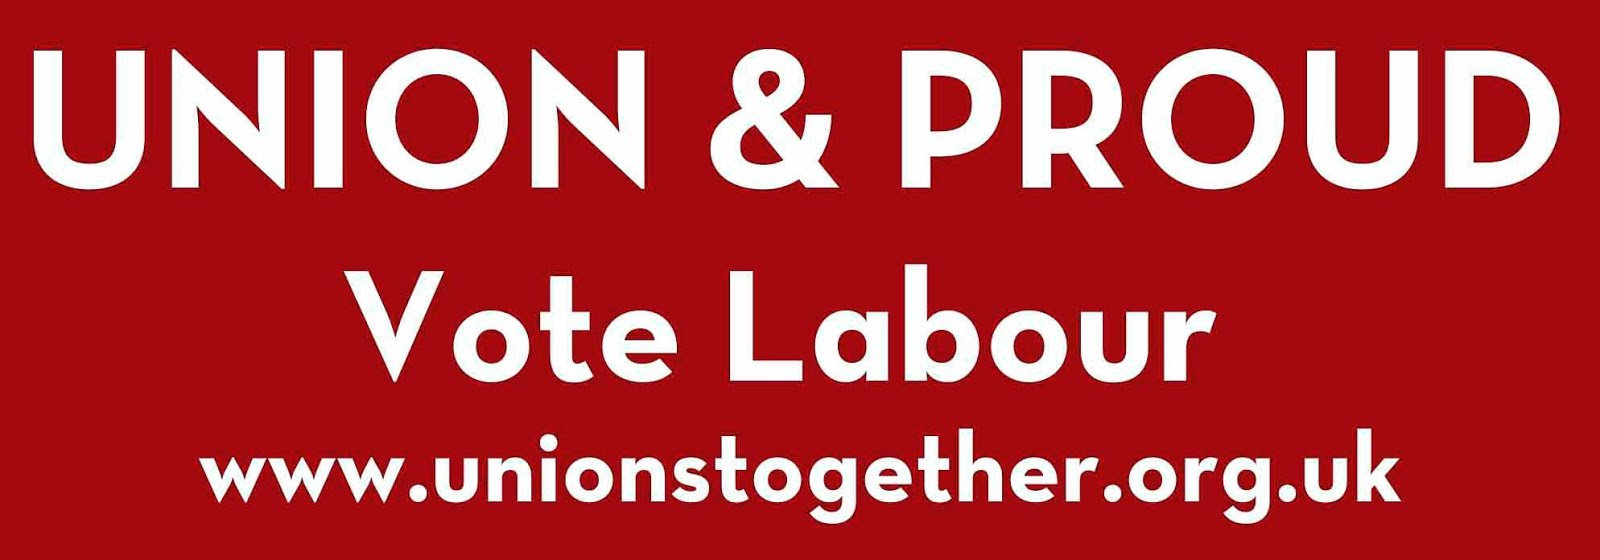 Union, Labour & Proud